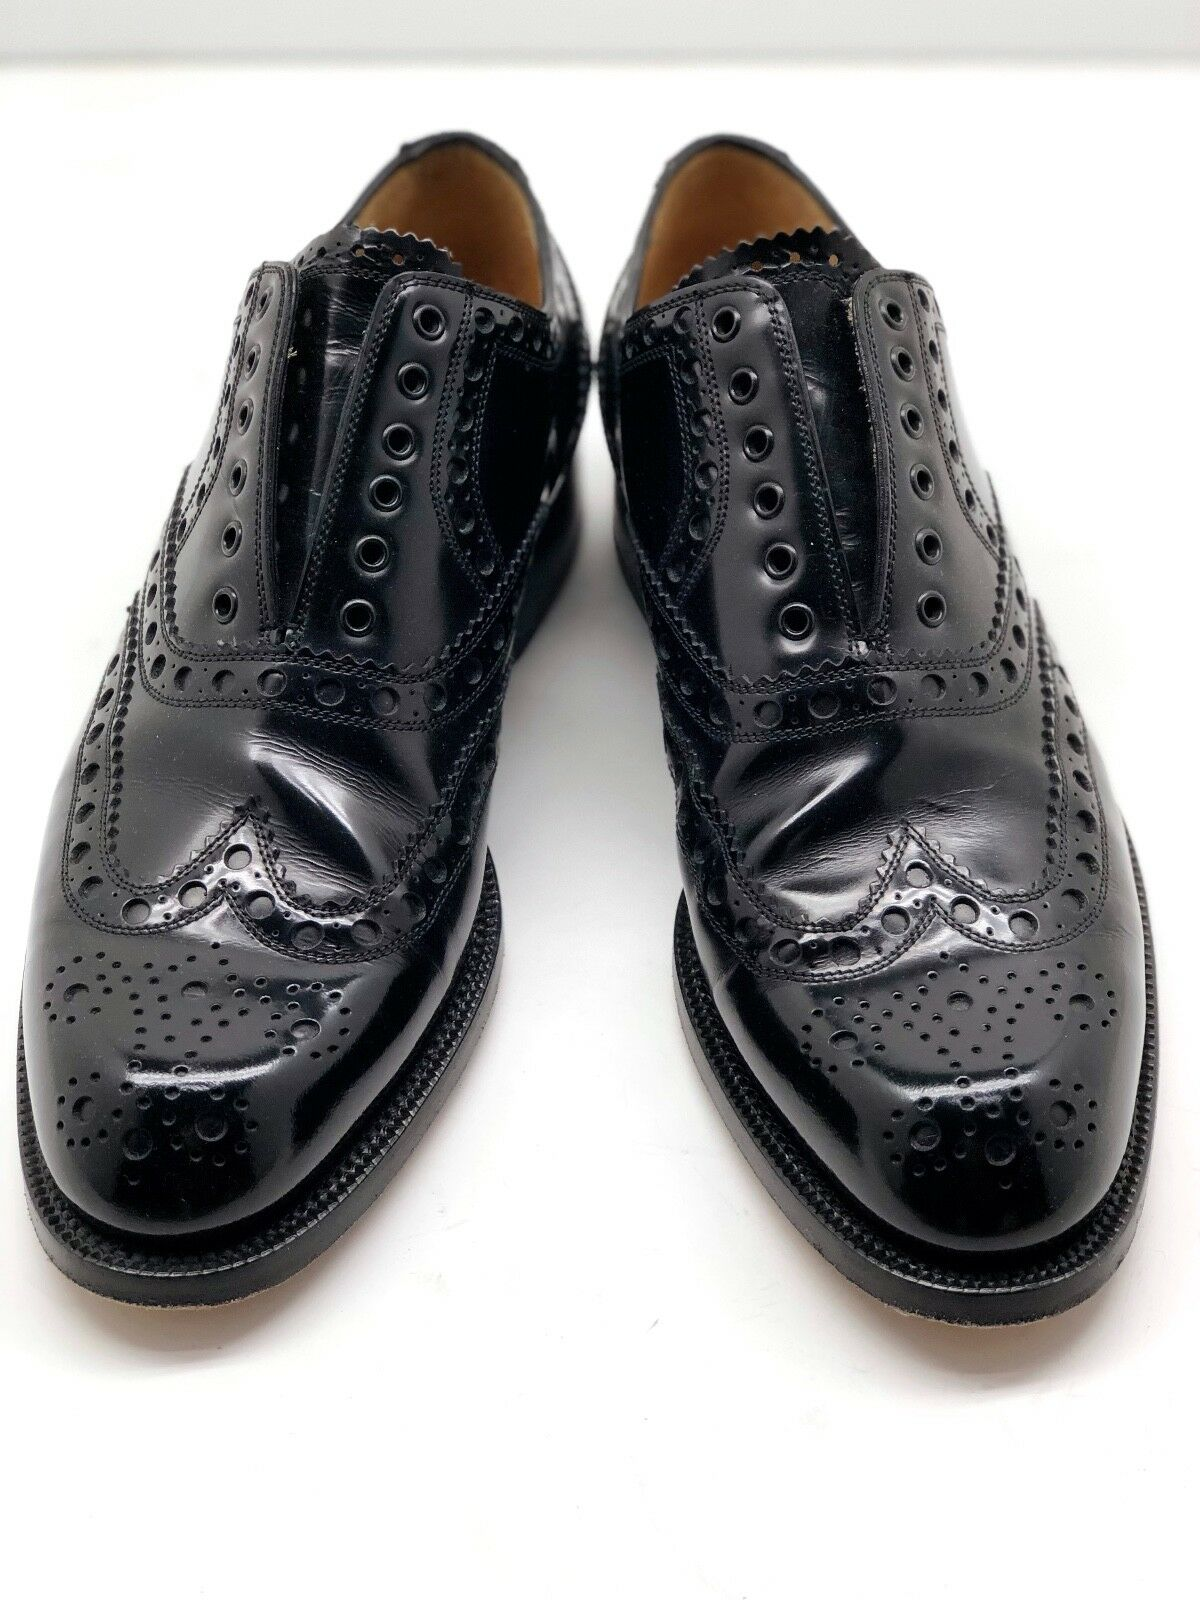 Cole Haan Preston Cap Toe Oxford Dress shoes  Black Men's size US 8 EU 41.5